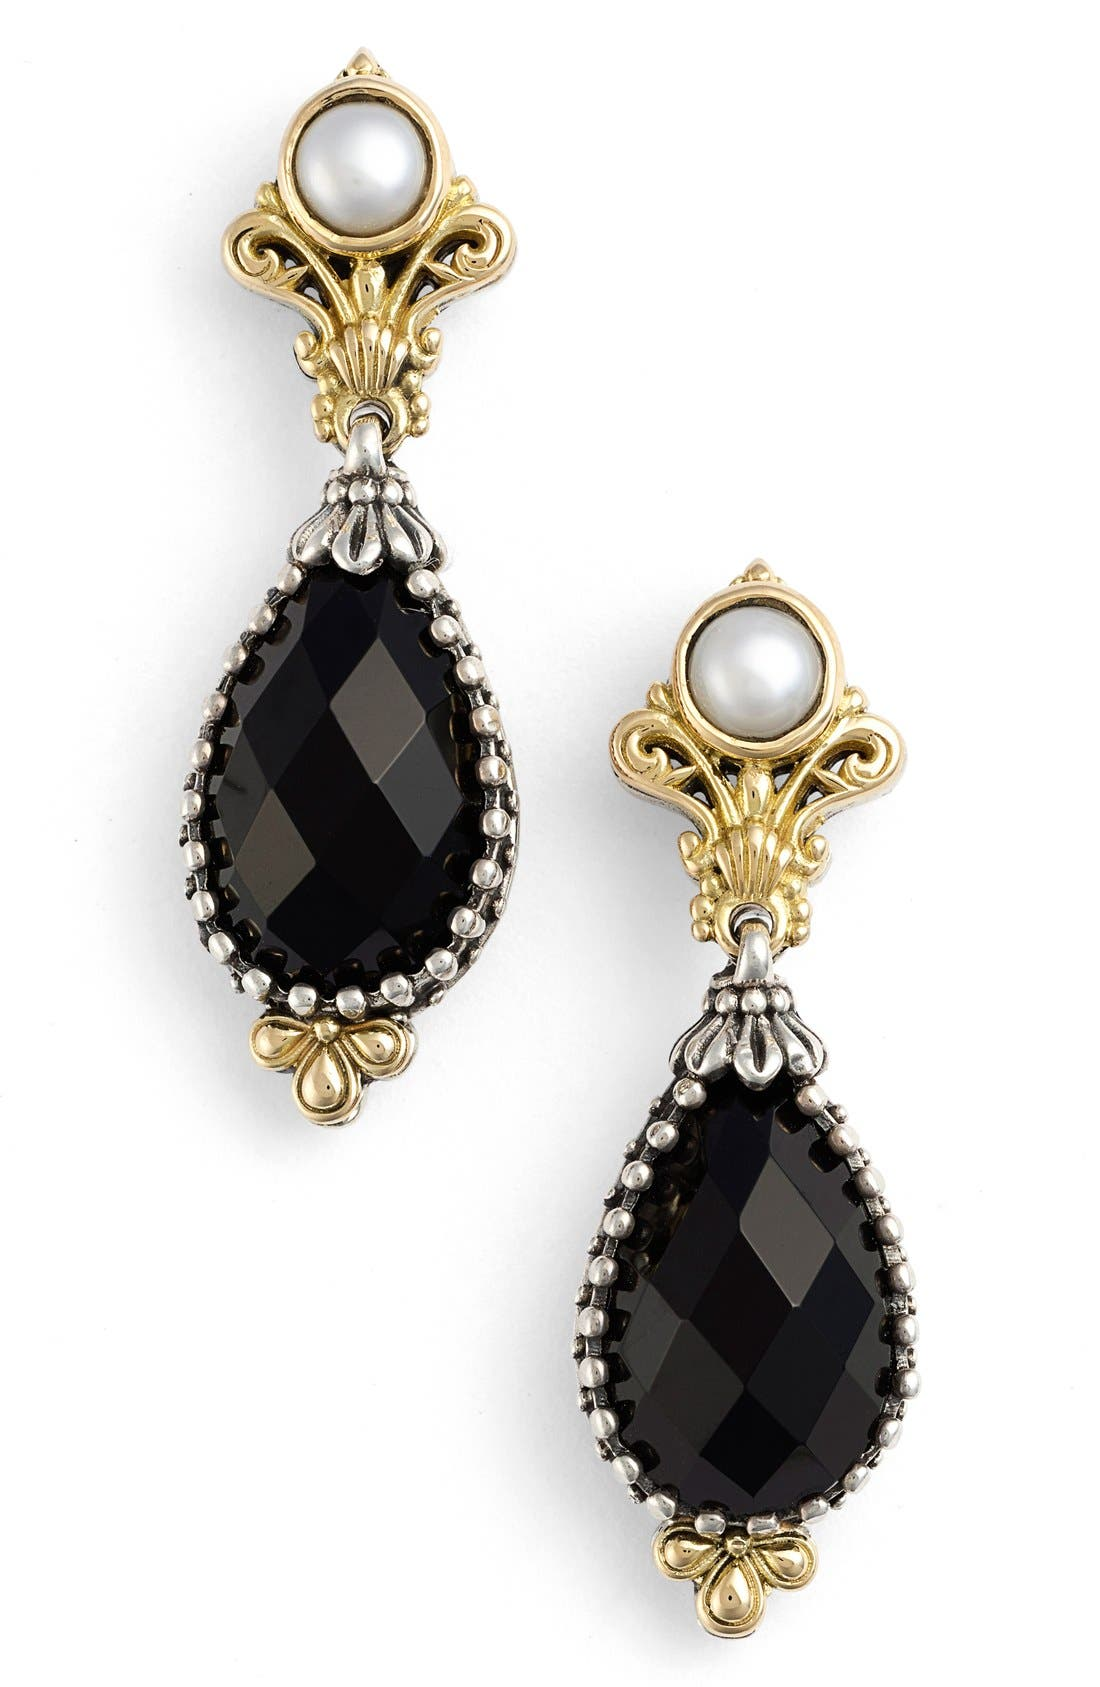 KONSTANTINO Nykta Pearl & Black Onyx Drop Earrings